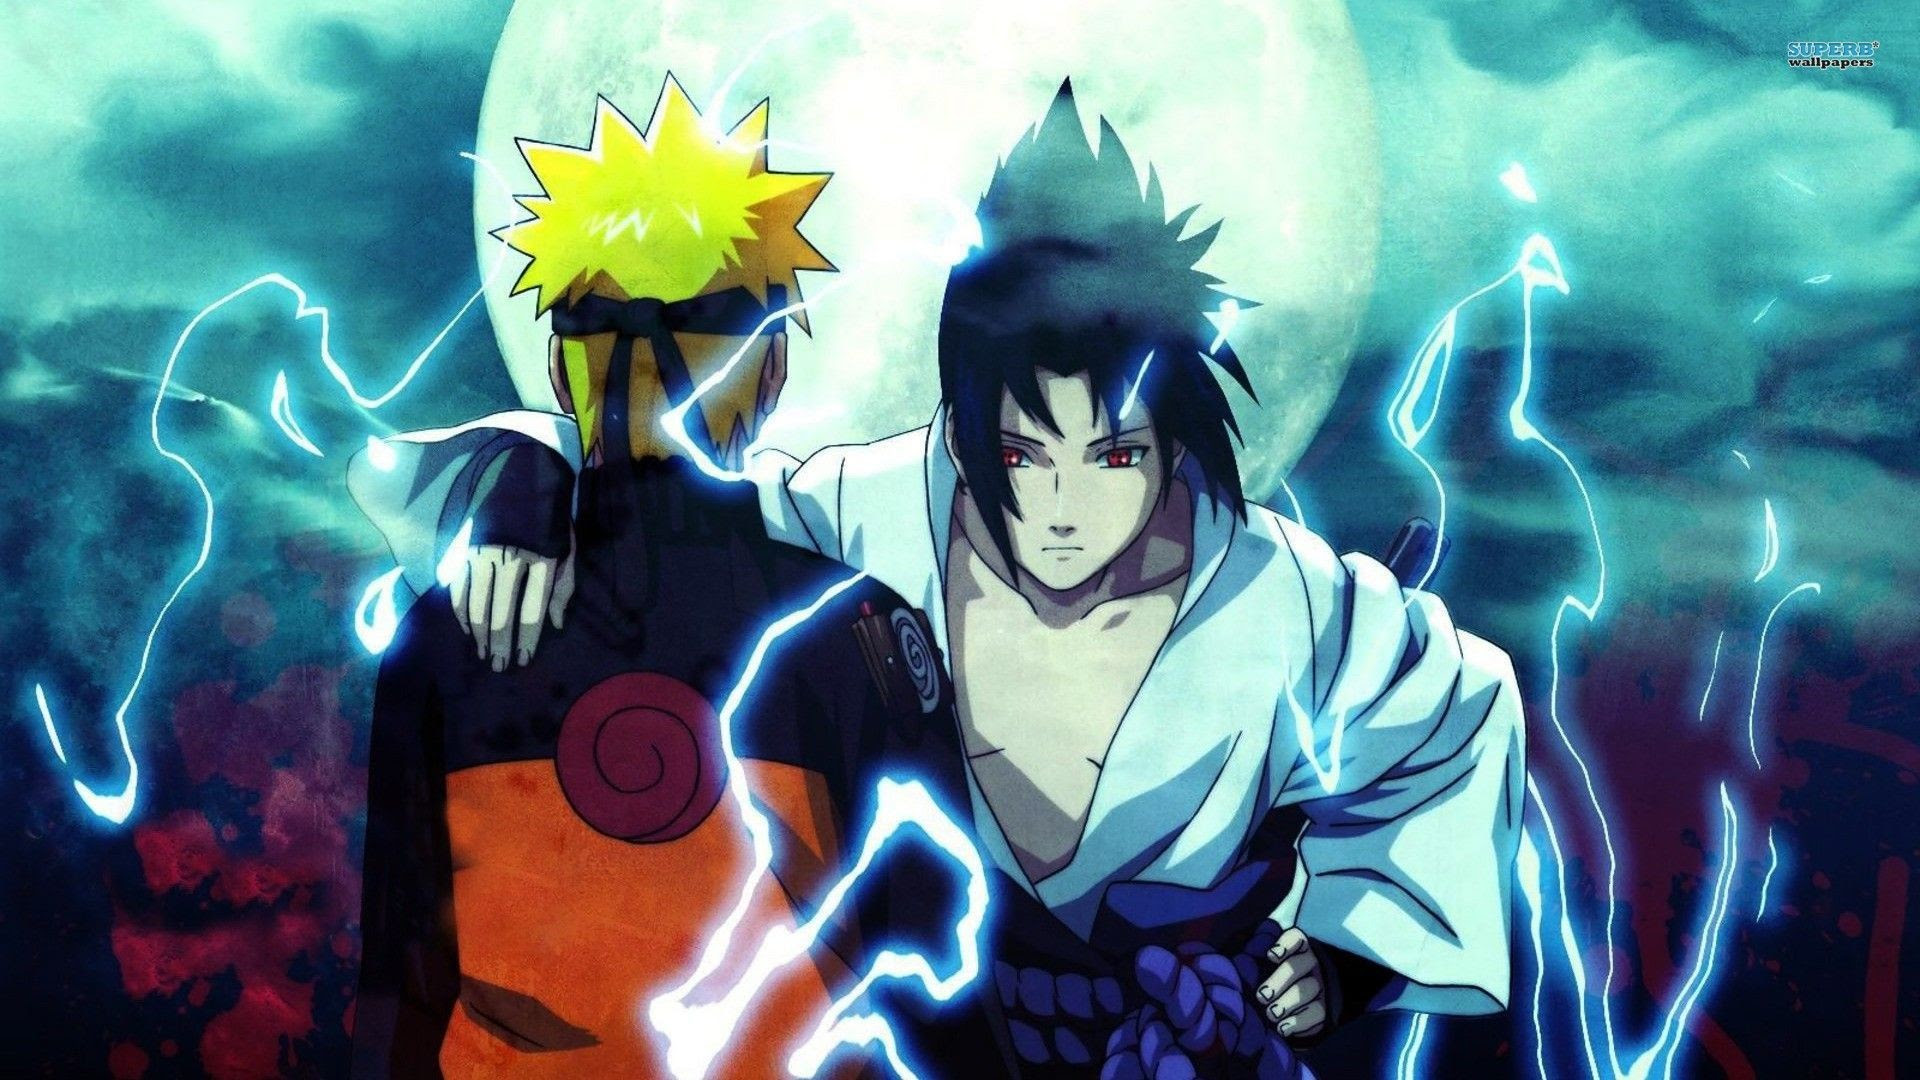 Cool Naruto Shippuden Wallpapers 46 Images